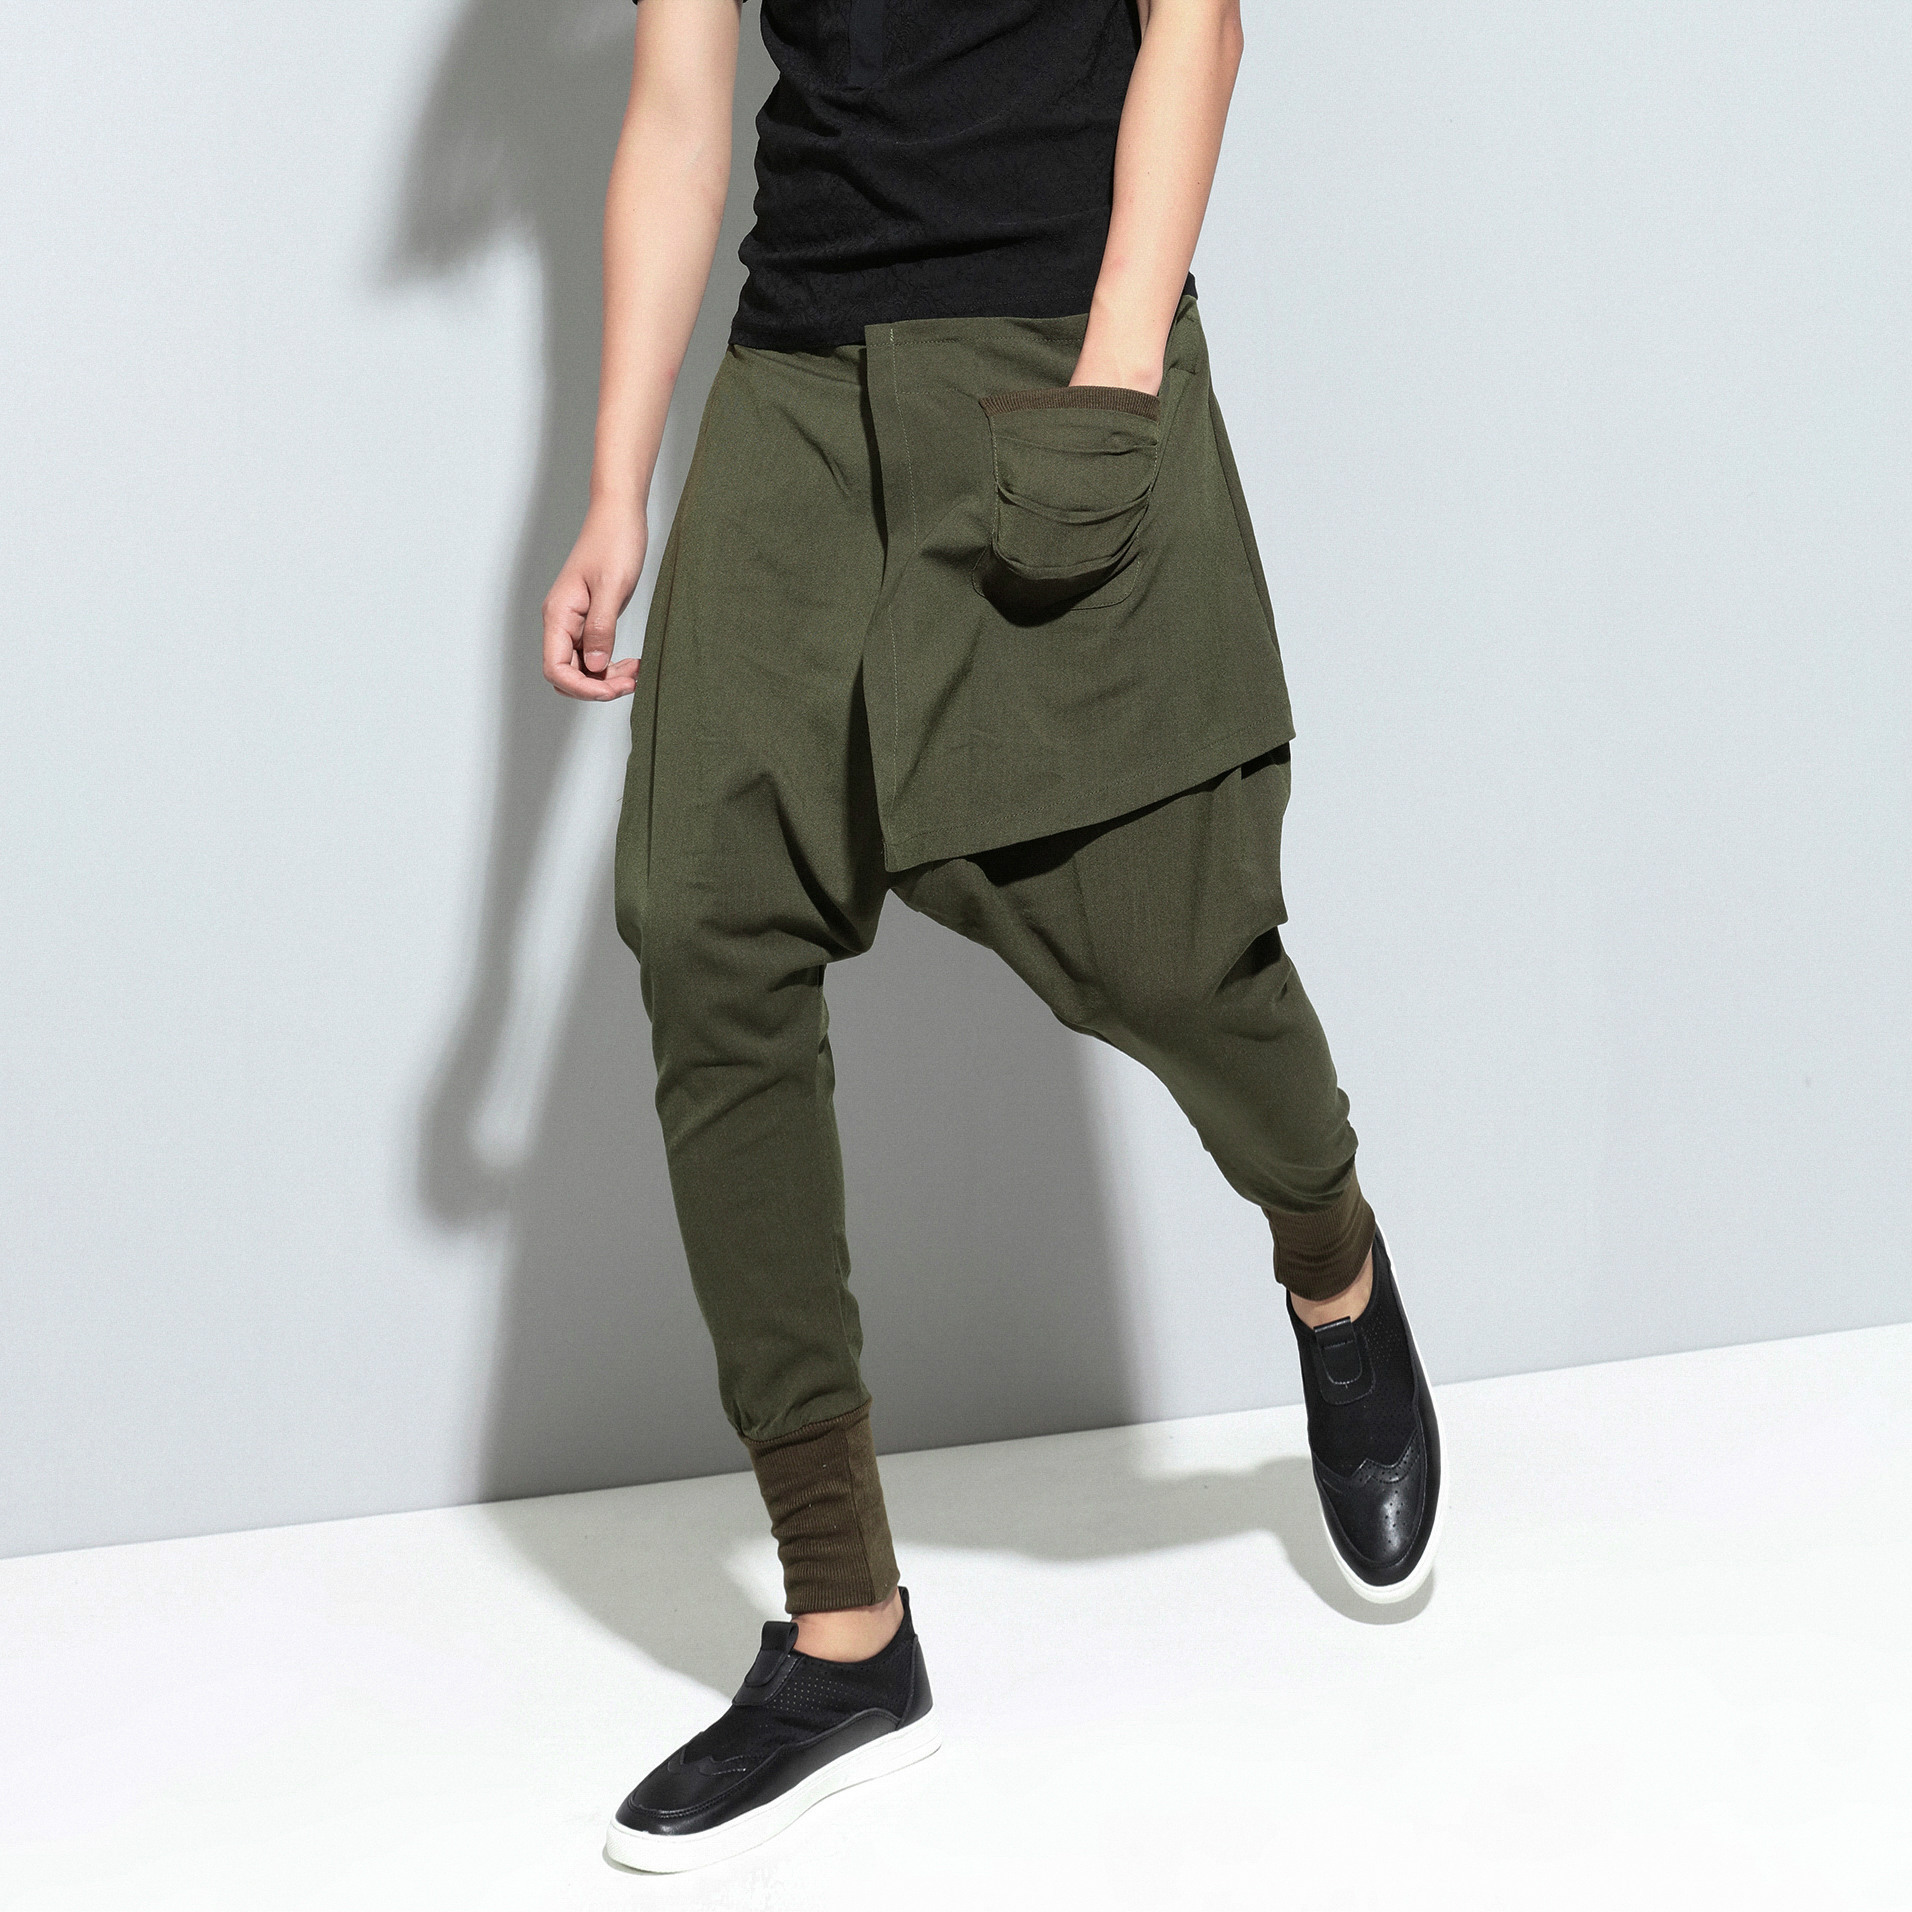 Ejqyhqr Pencil-Trousers Baggy-Pants Street-Sweatpants Patchwork Drop-Crotch Elastic-Waist